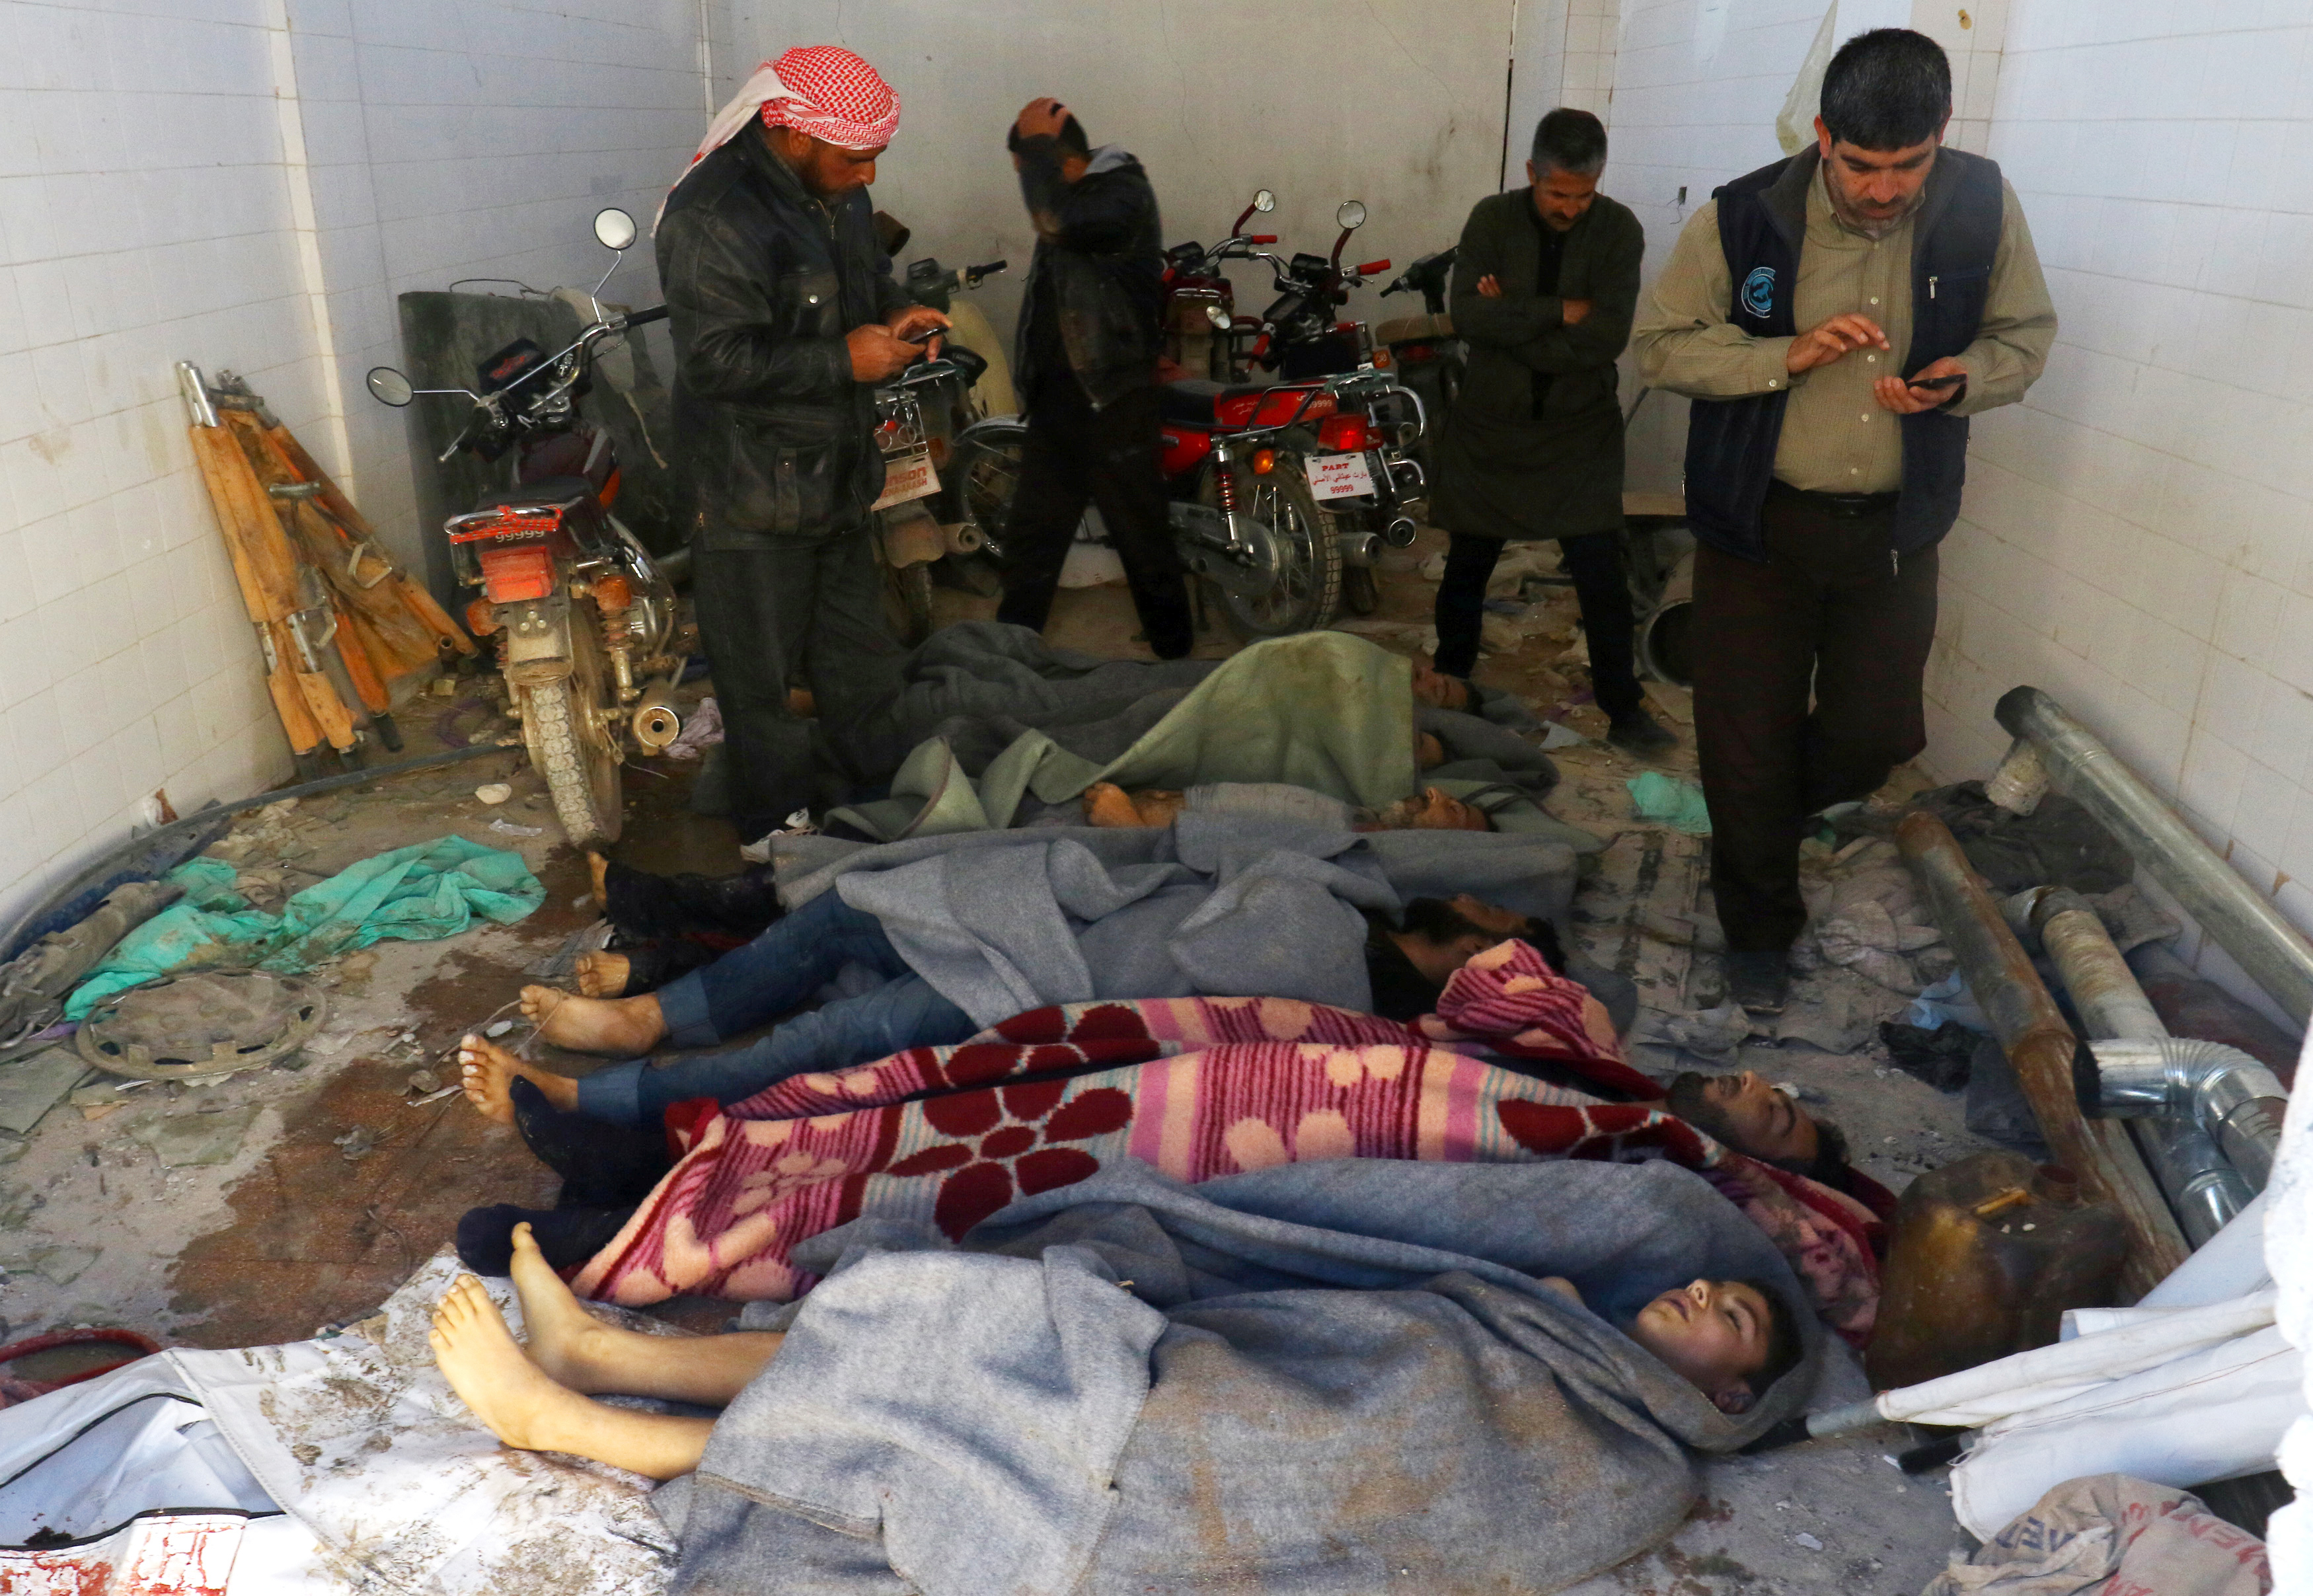 Bodies are wrapped in blankets after a suspected chemical attack in the town of Khan Shaykhun on Tuesday.     (Ammar Abdullah/Reuters)